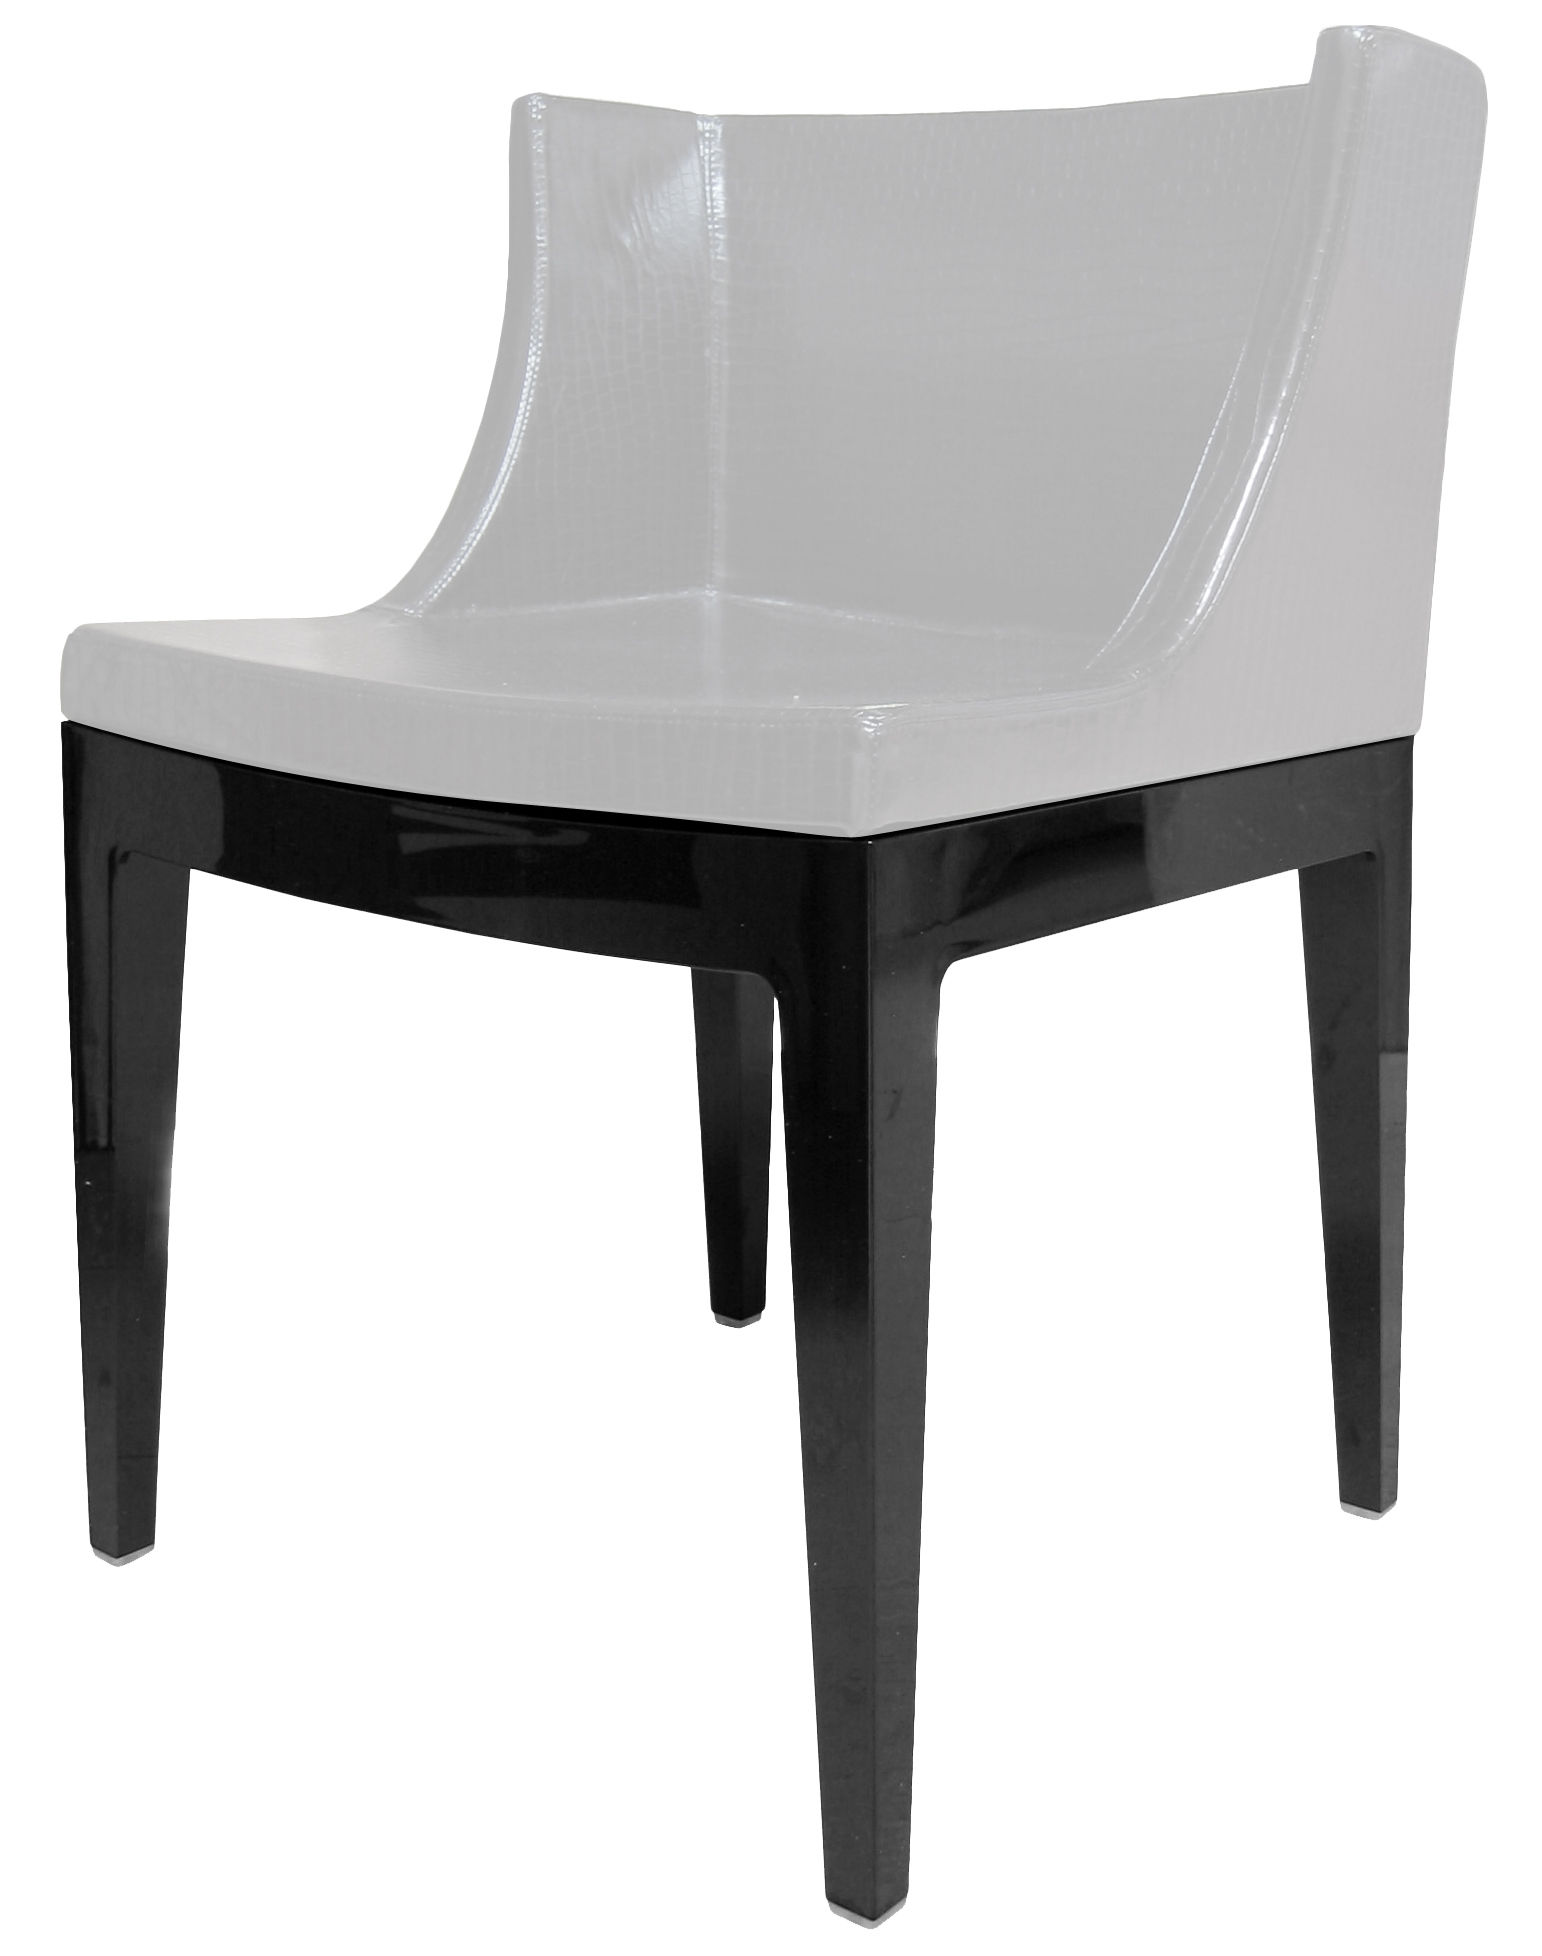 Fauteuil rembourr mademoiselle cocco structure noire kartell - Fauteuil kartell mademoiselle ...